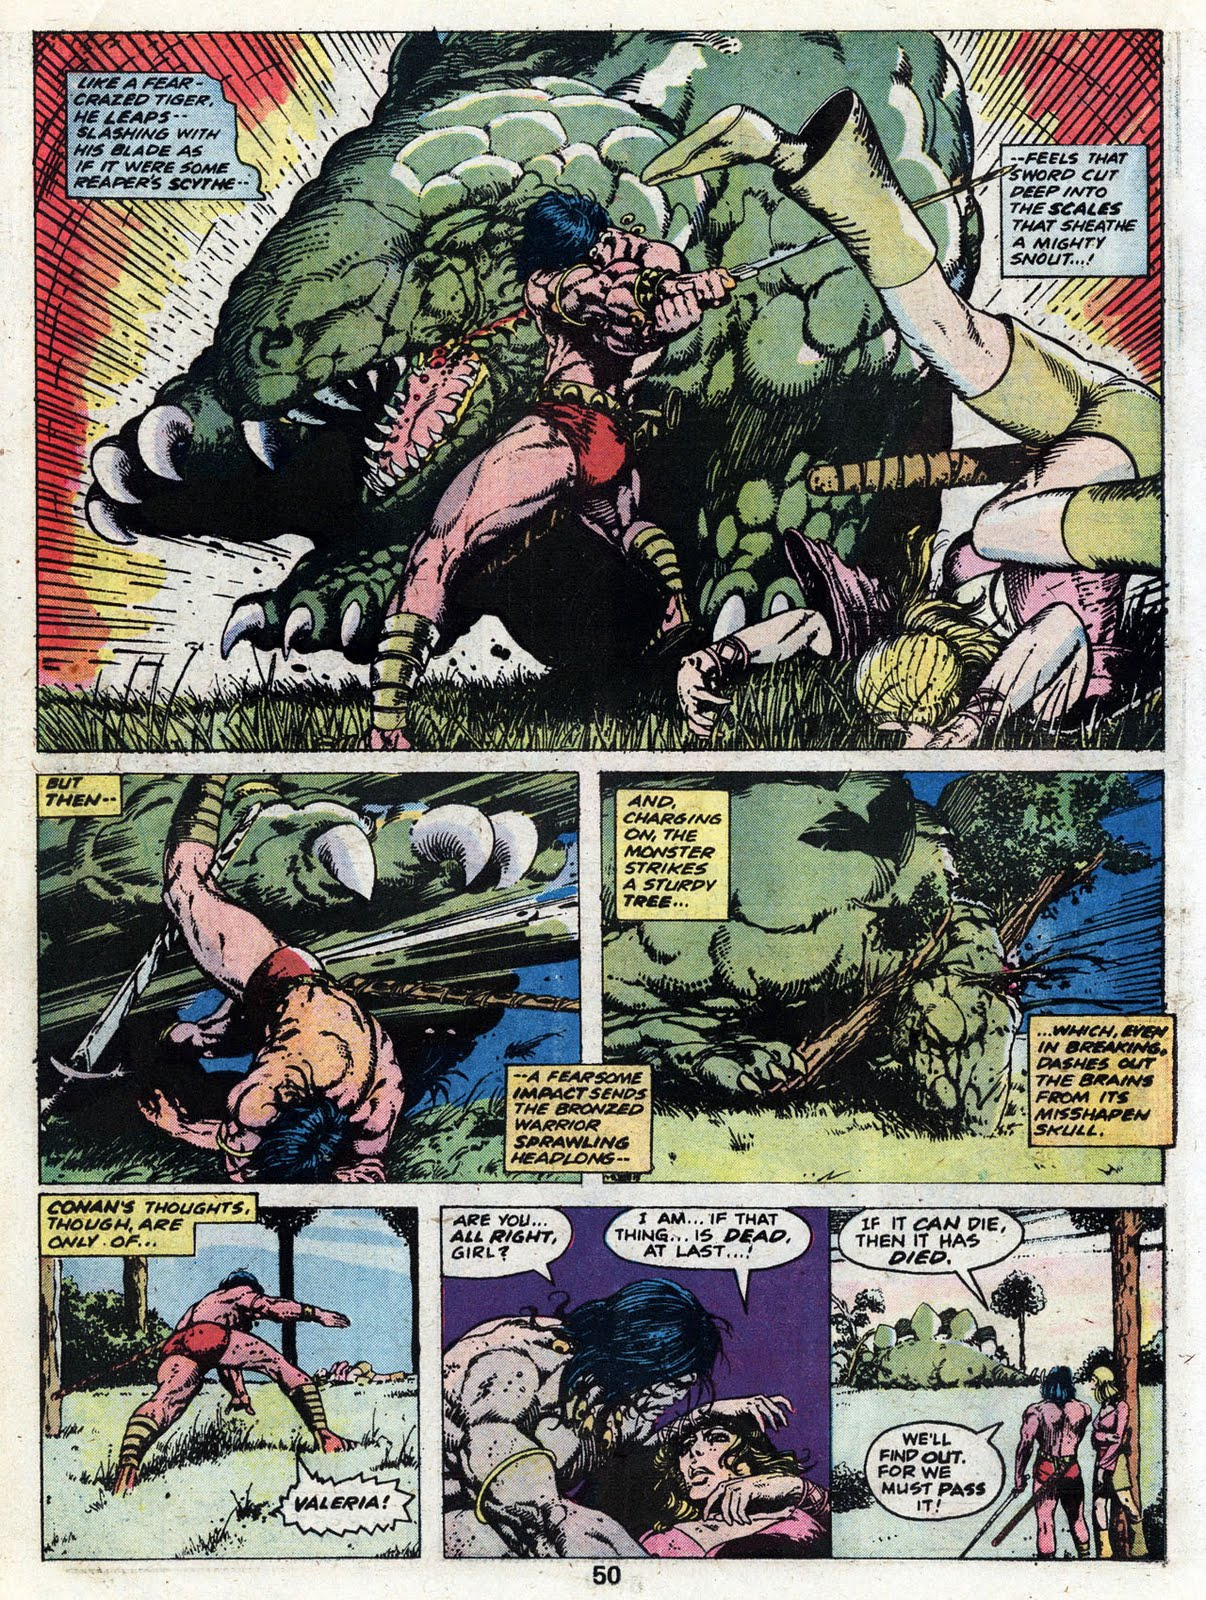 The Warrior's Comic Book Den: Marvel Treasury Edition #4 Featuring Conan  The Barbarian: